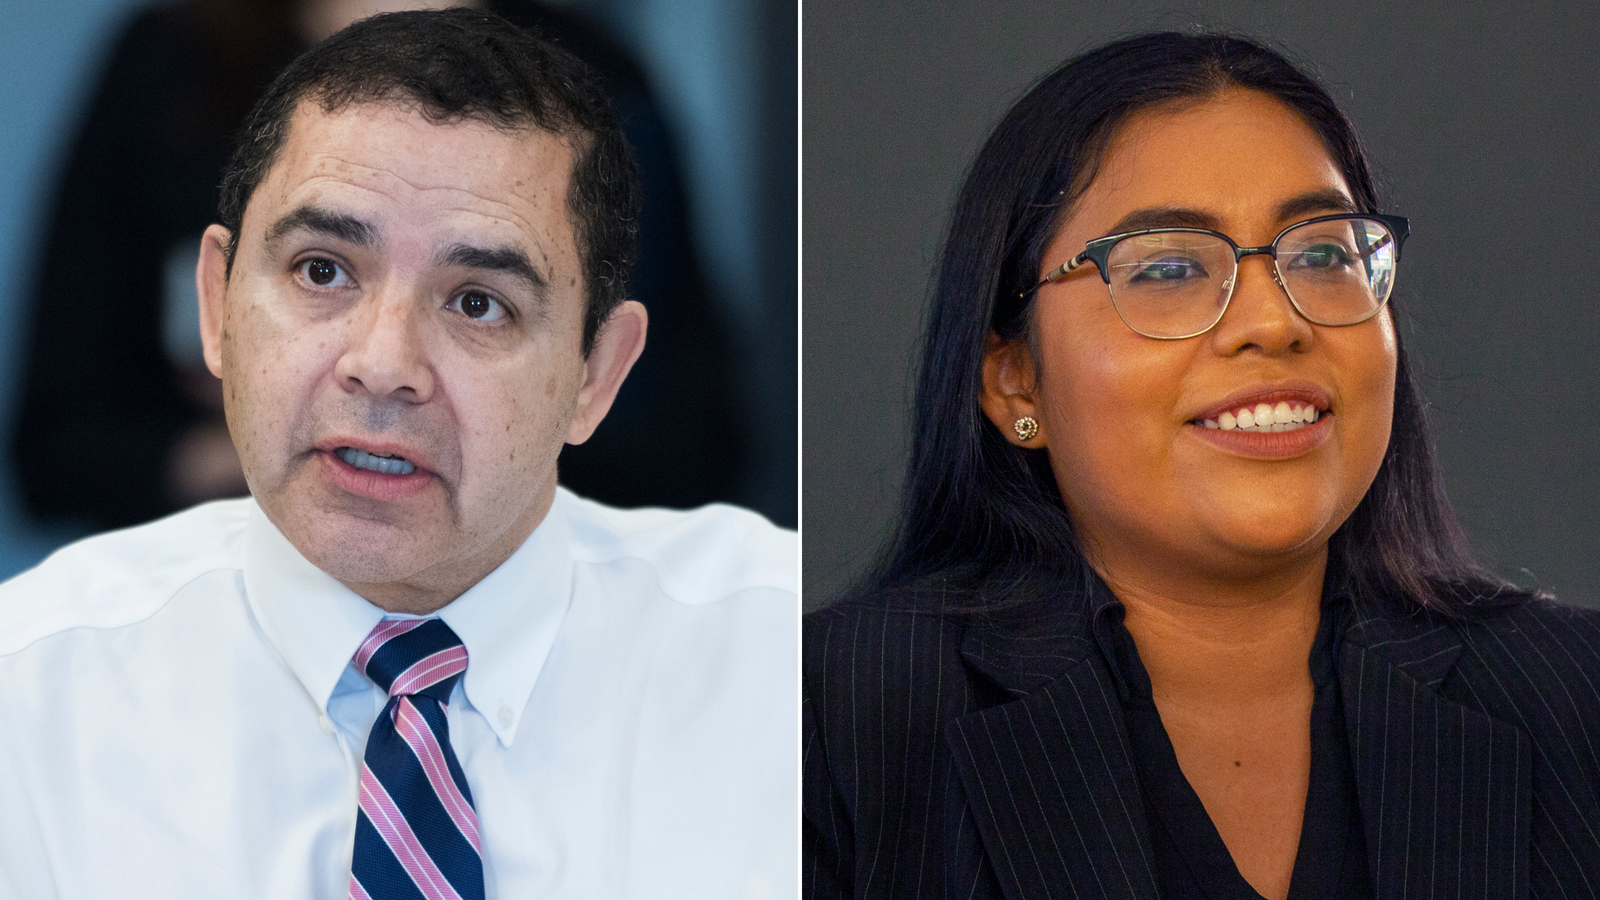 AOC-backed challenger targets conservative Texas Democrat ahead of Super Tuesday primary